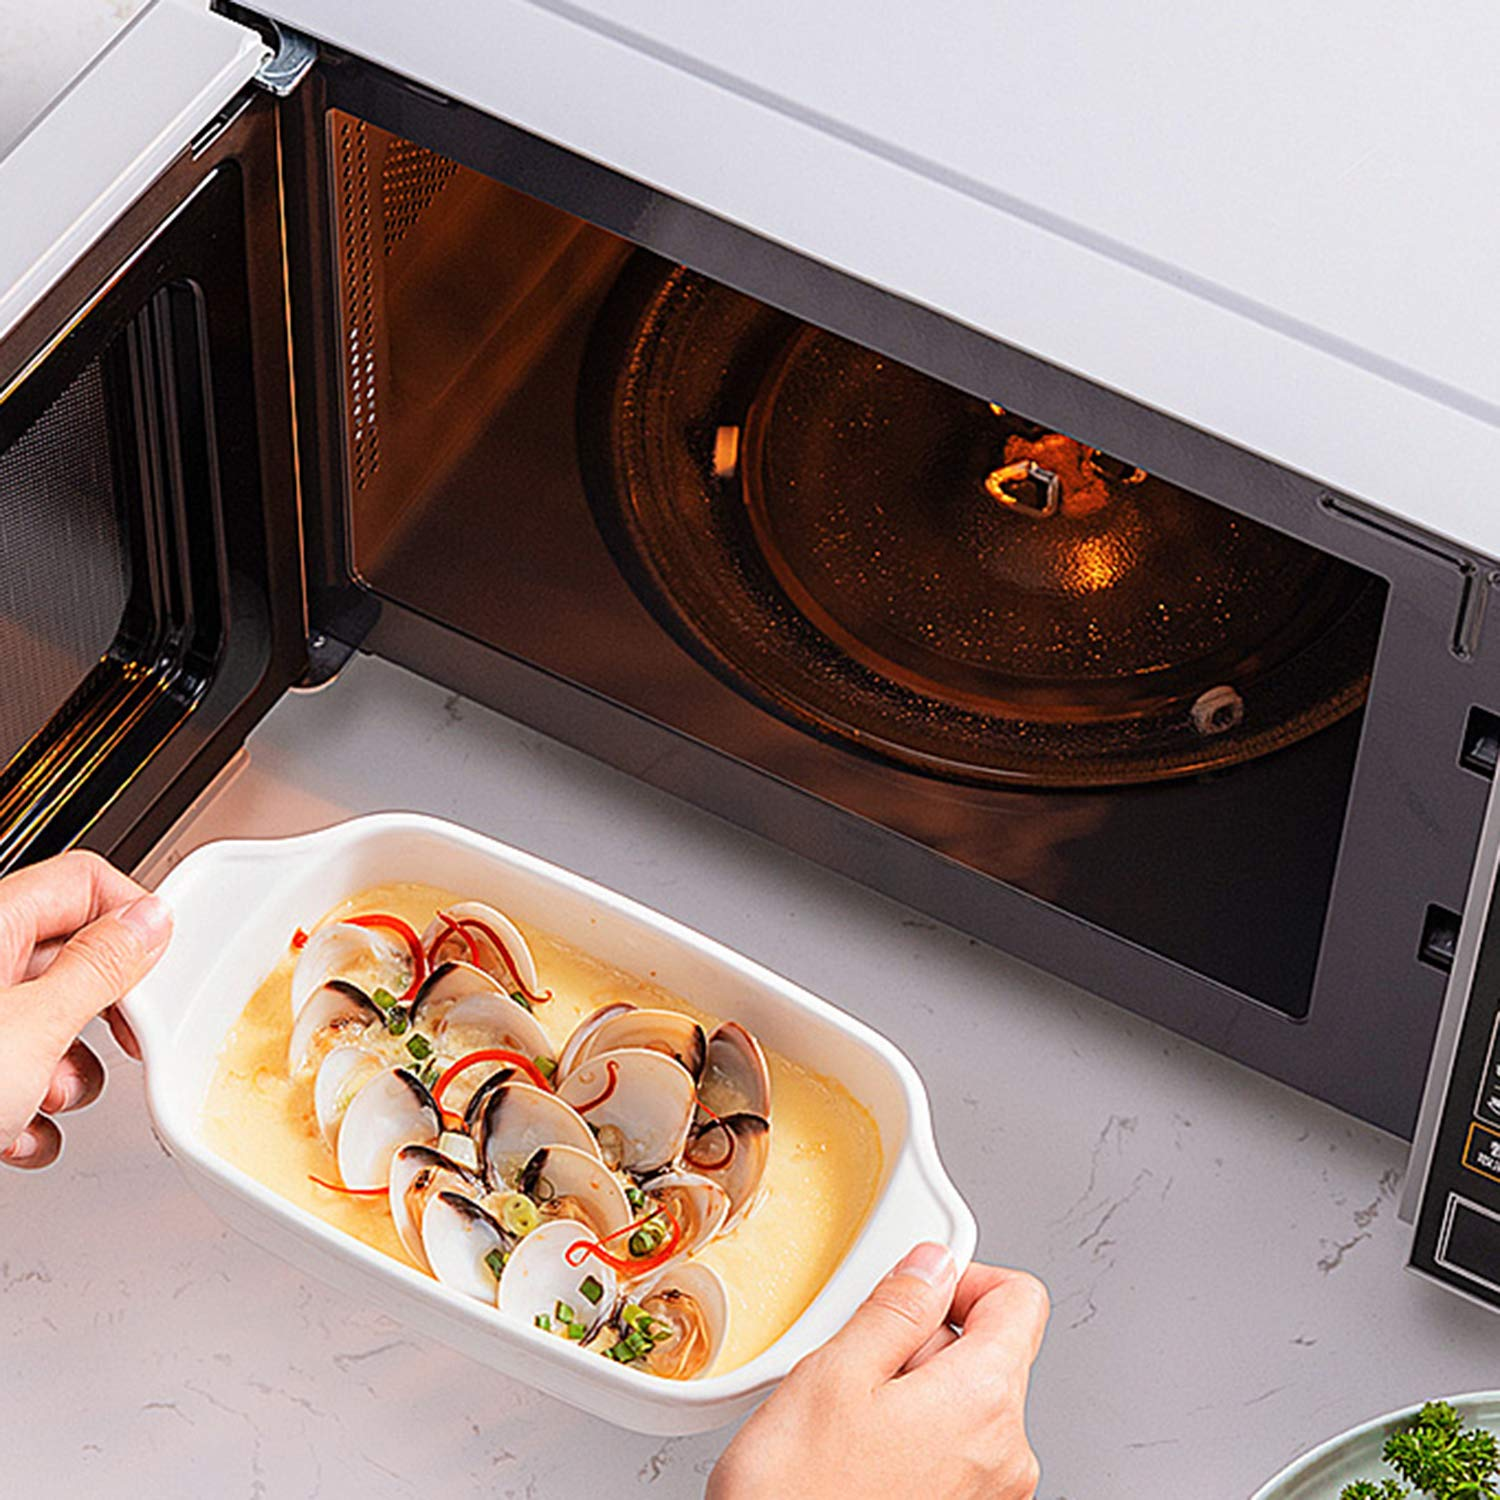 Microwave Glass Turntable Plate Replacement with Heat Resistant Glove For Large Microwaves 12.5 Microwave Glass Plate